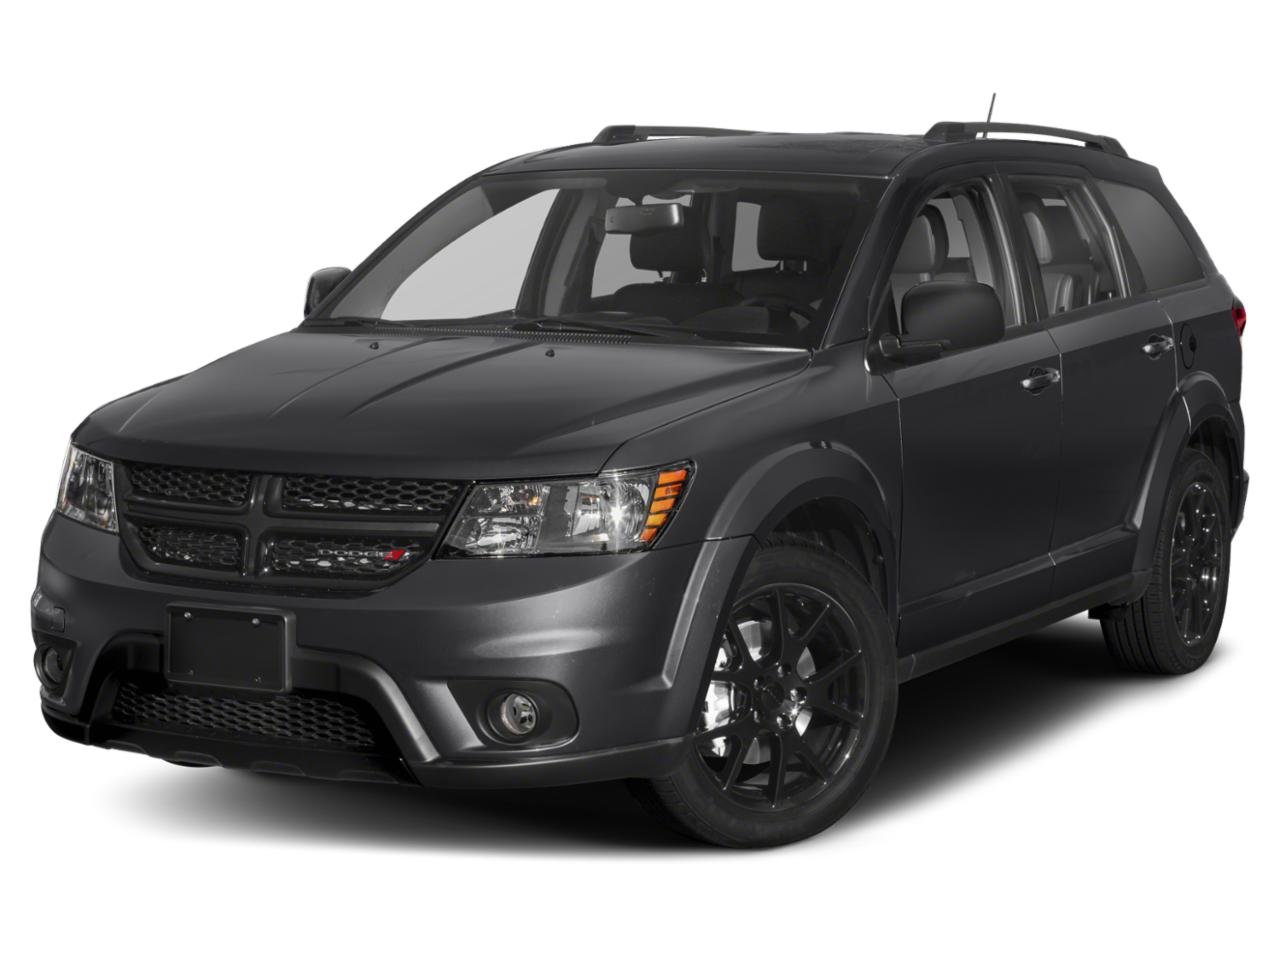 2019 Dodge Journey Vehicle Photo in Neenah, WI 54956